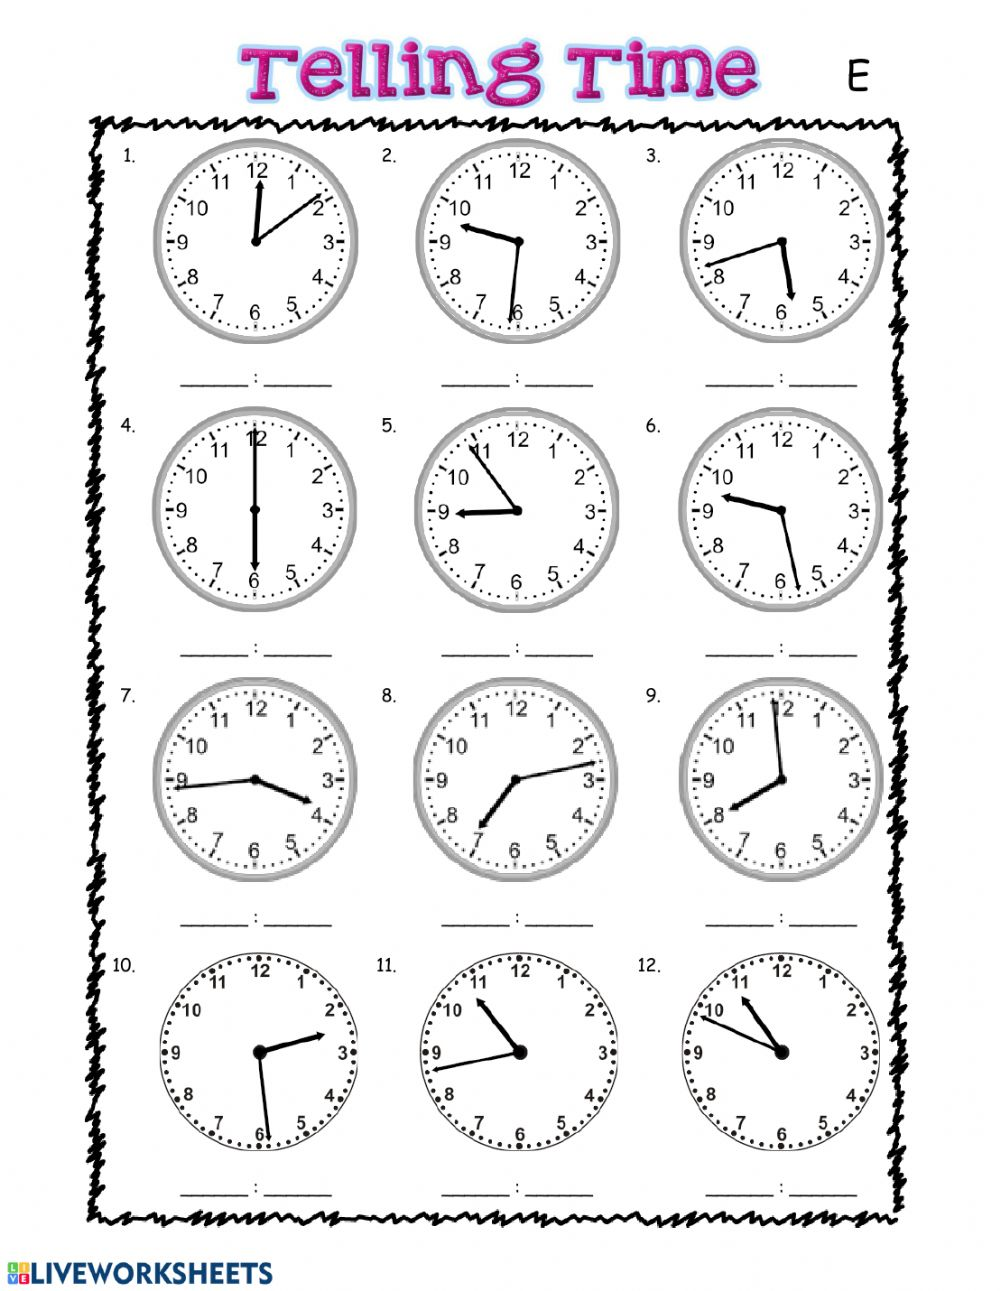 Telling Time interactive exercise for grade 20